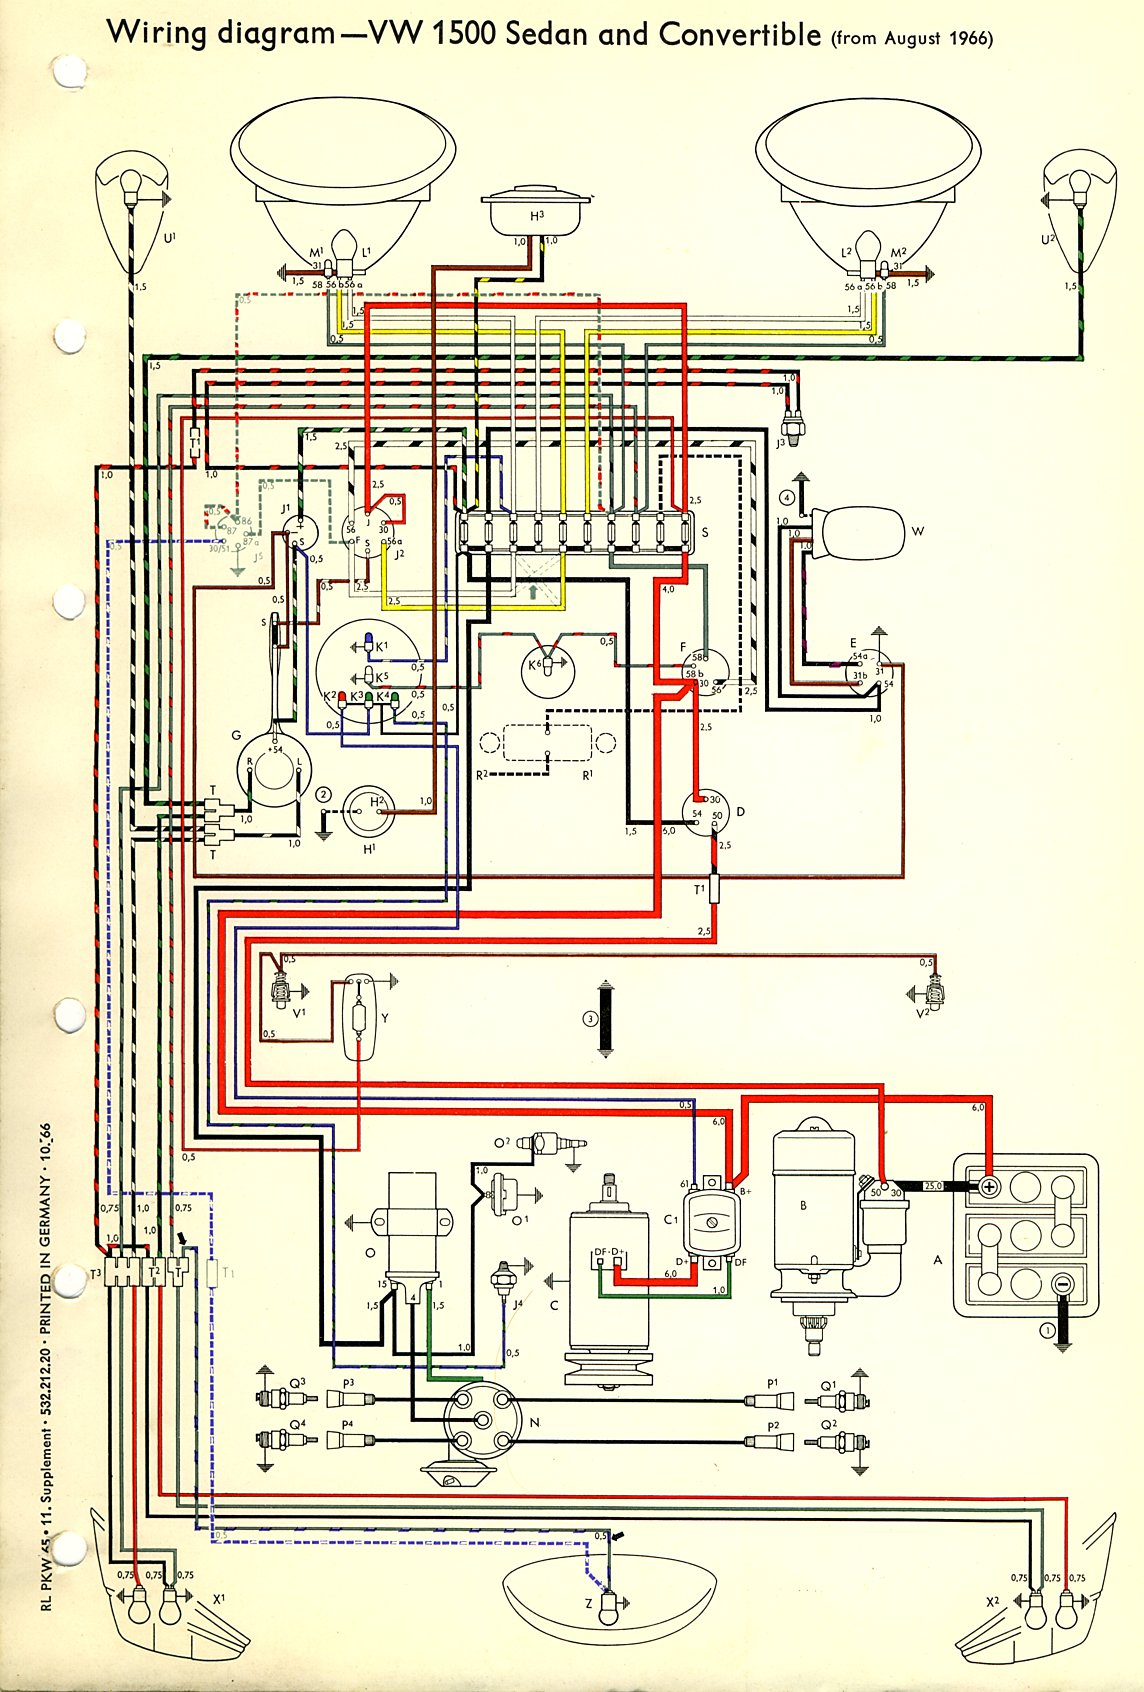 bug_67 thesamba com type 1 wiring diagrams vw wiring diagram at gsmportal.co